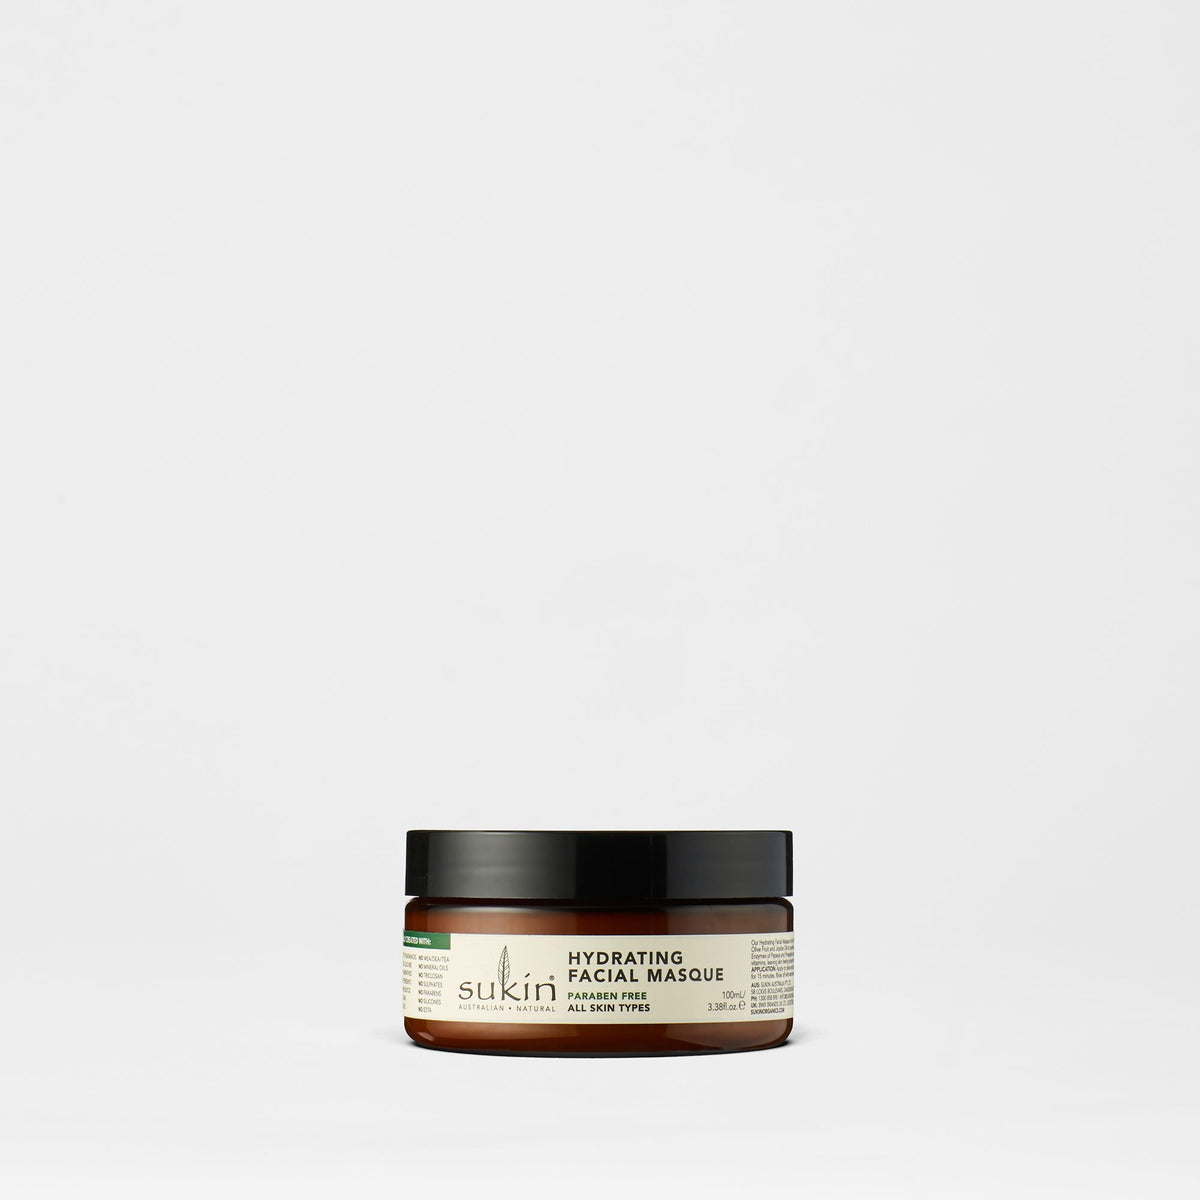 Hydrating Facial Masque | Signature 100ml